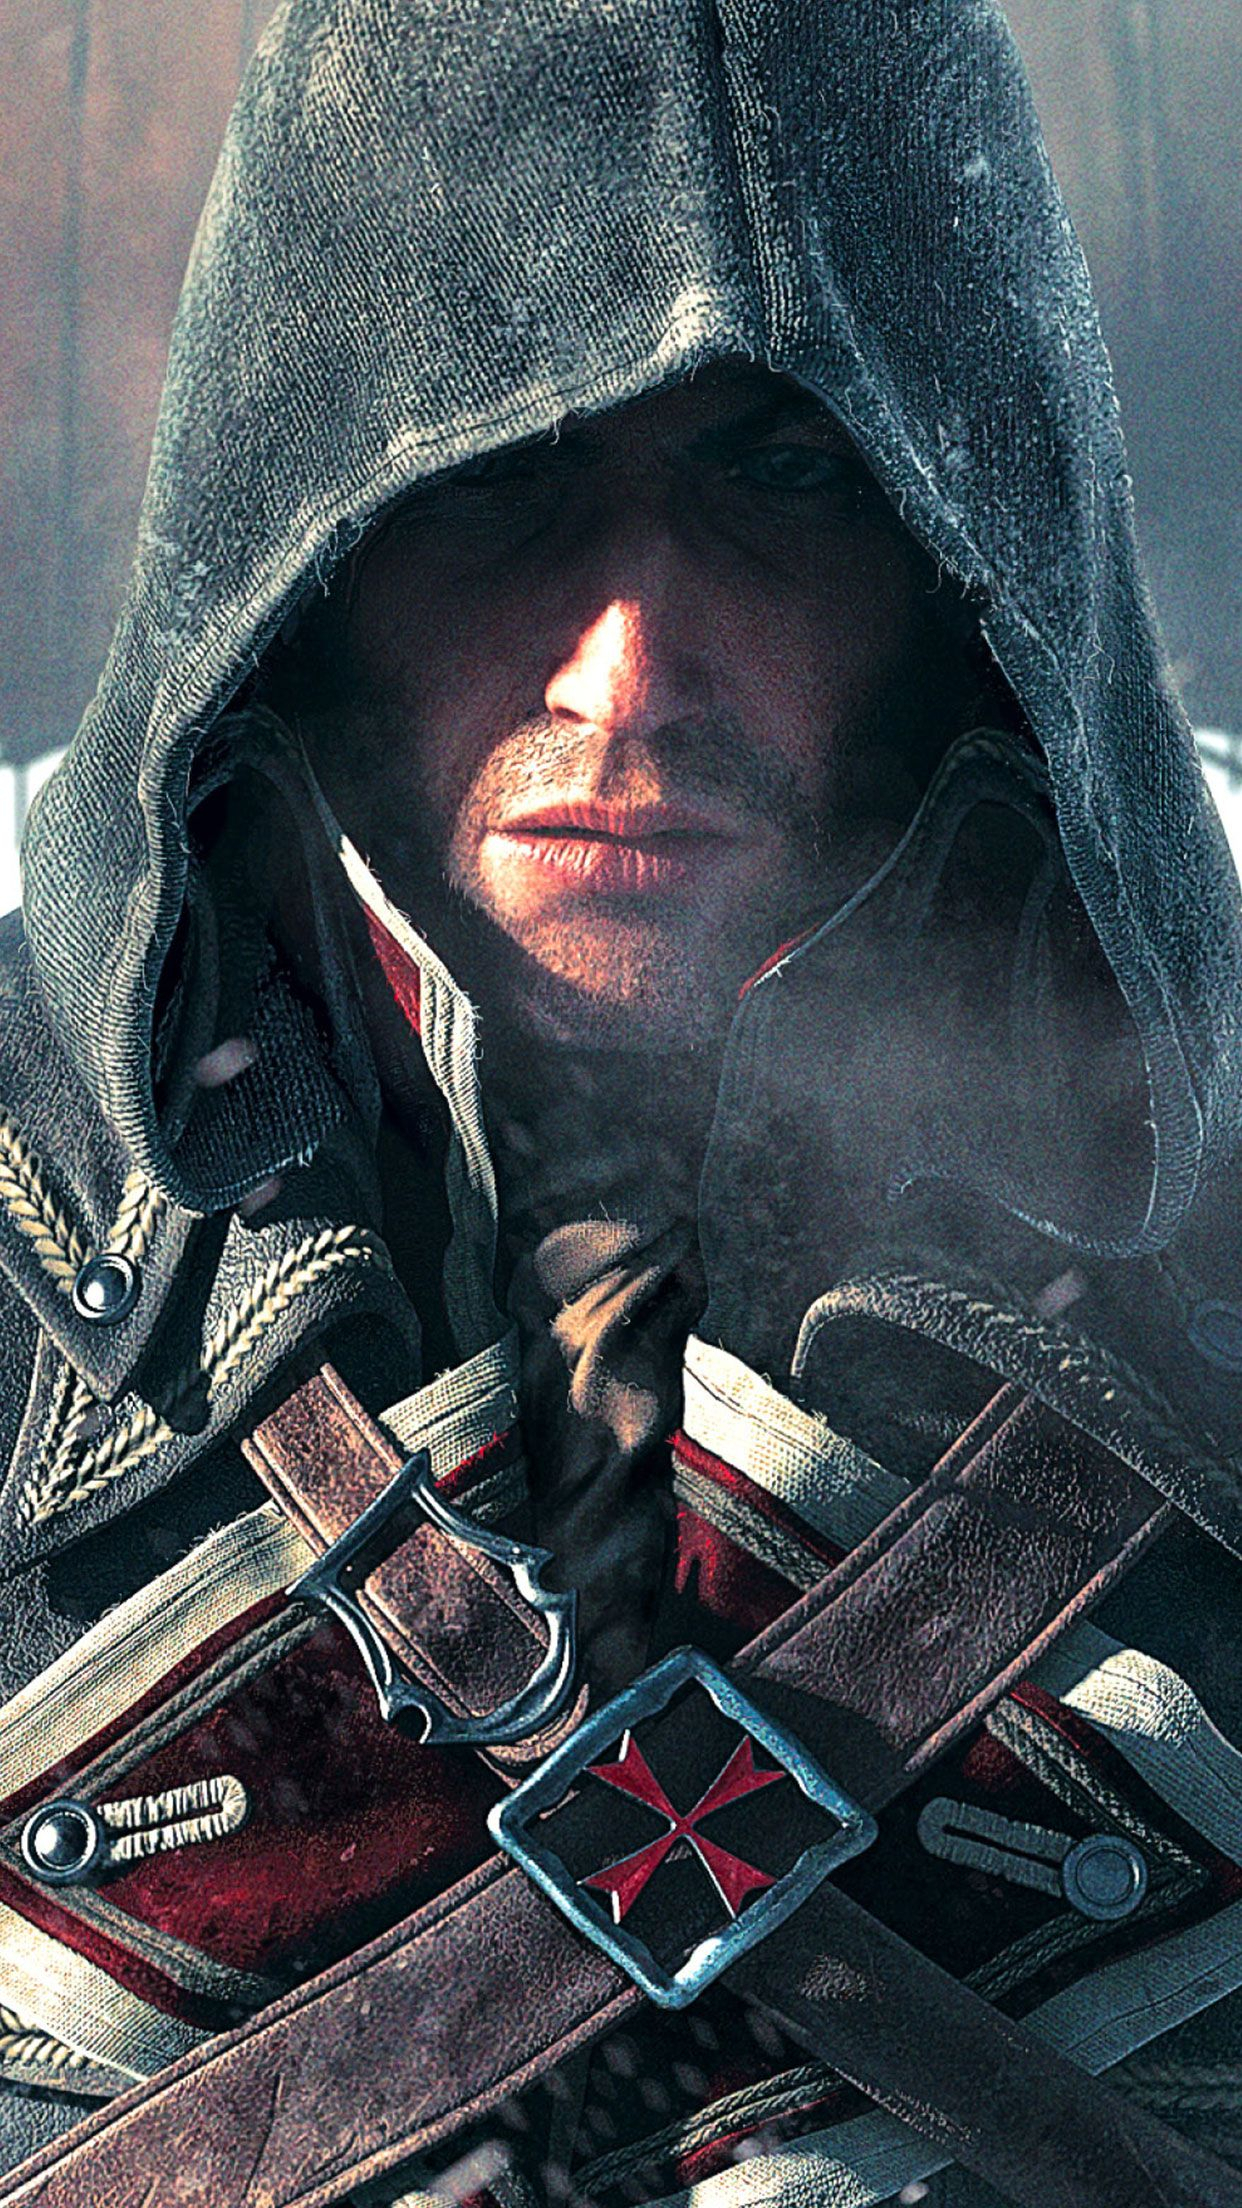 assassin's creed rogue game wallpaper #assassin #creed #game